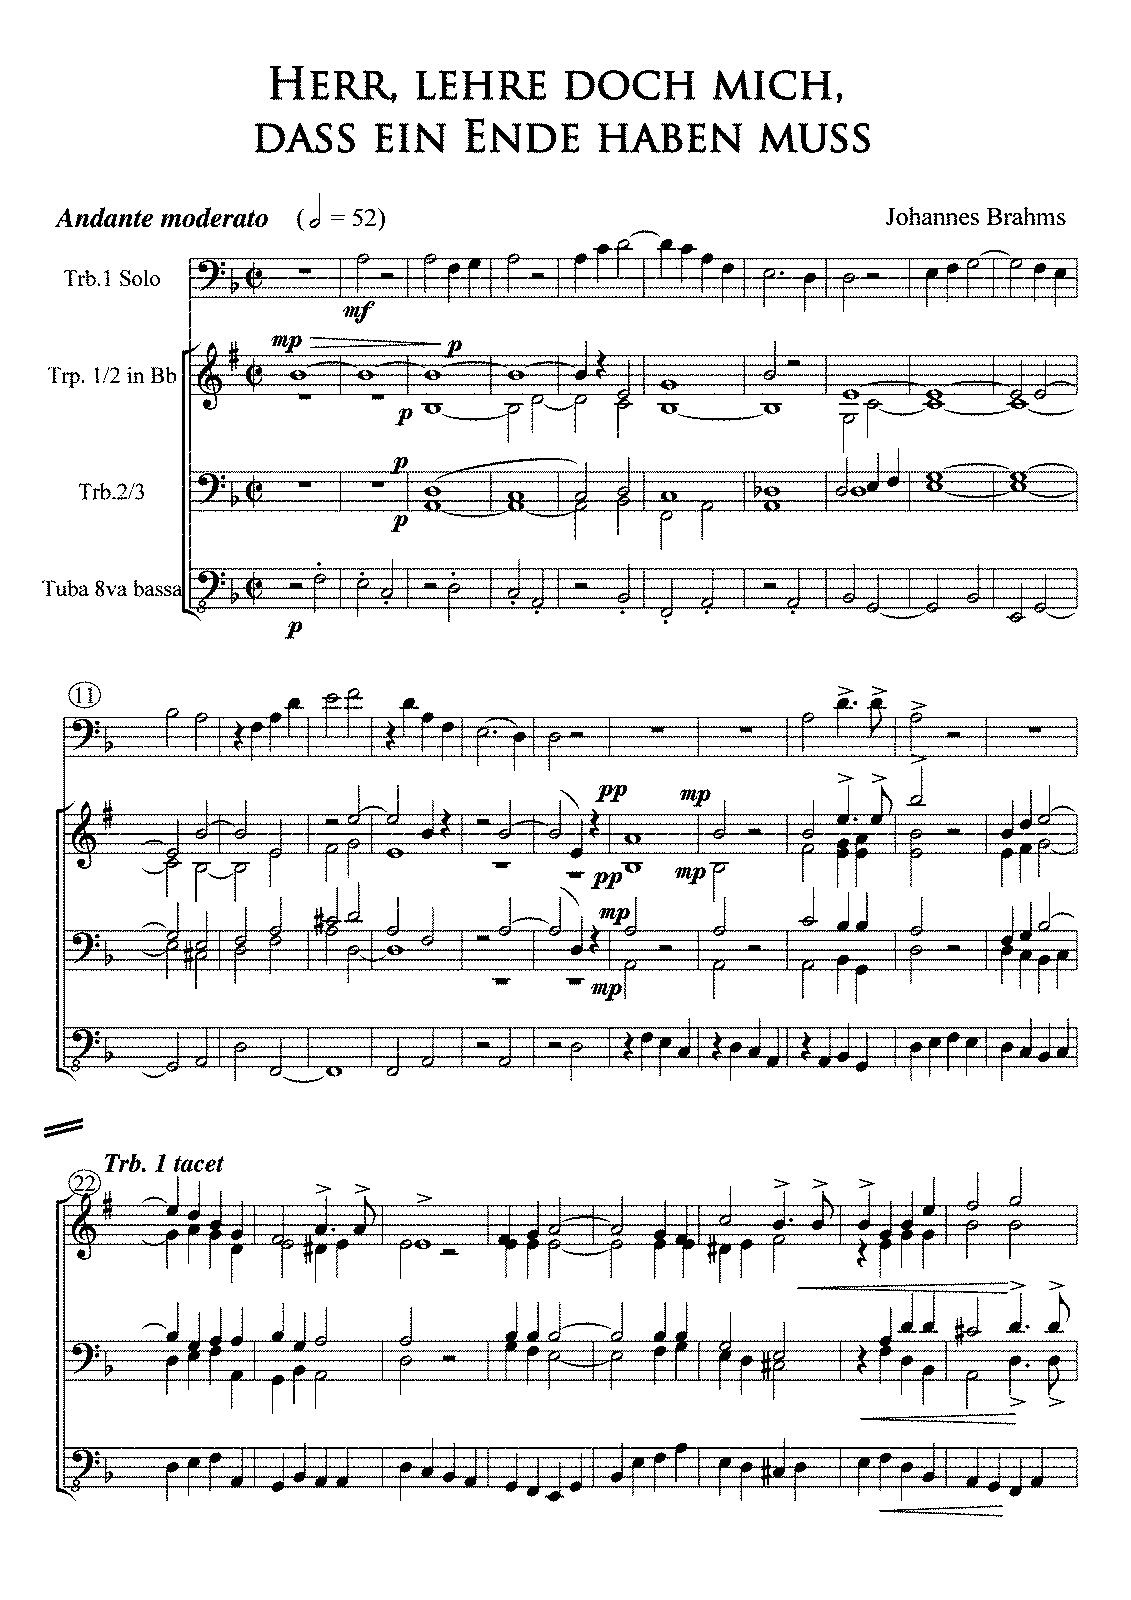 PMLP11297-Brahms Requiem 3 Herr Lehre doch mich Full Score and parts with Trp in Bb.pdf